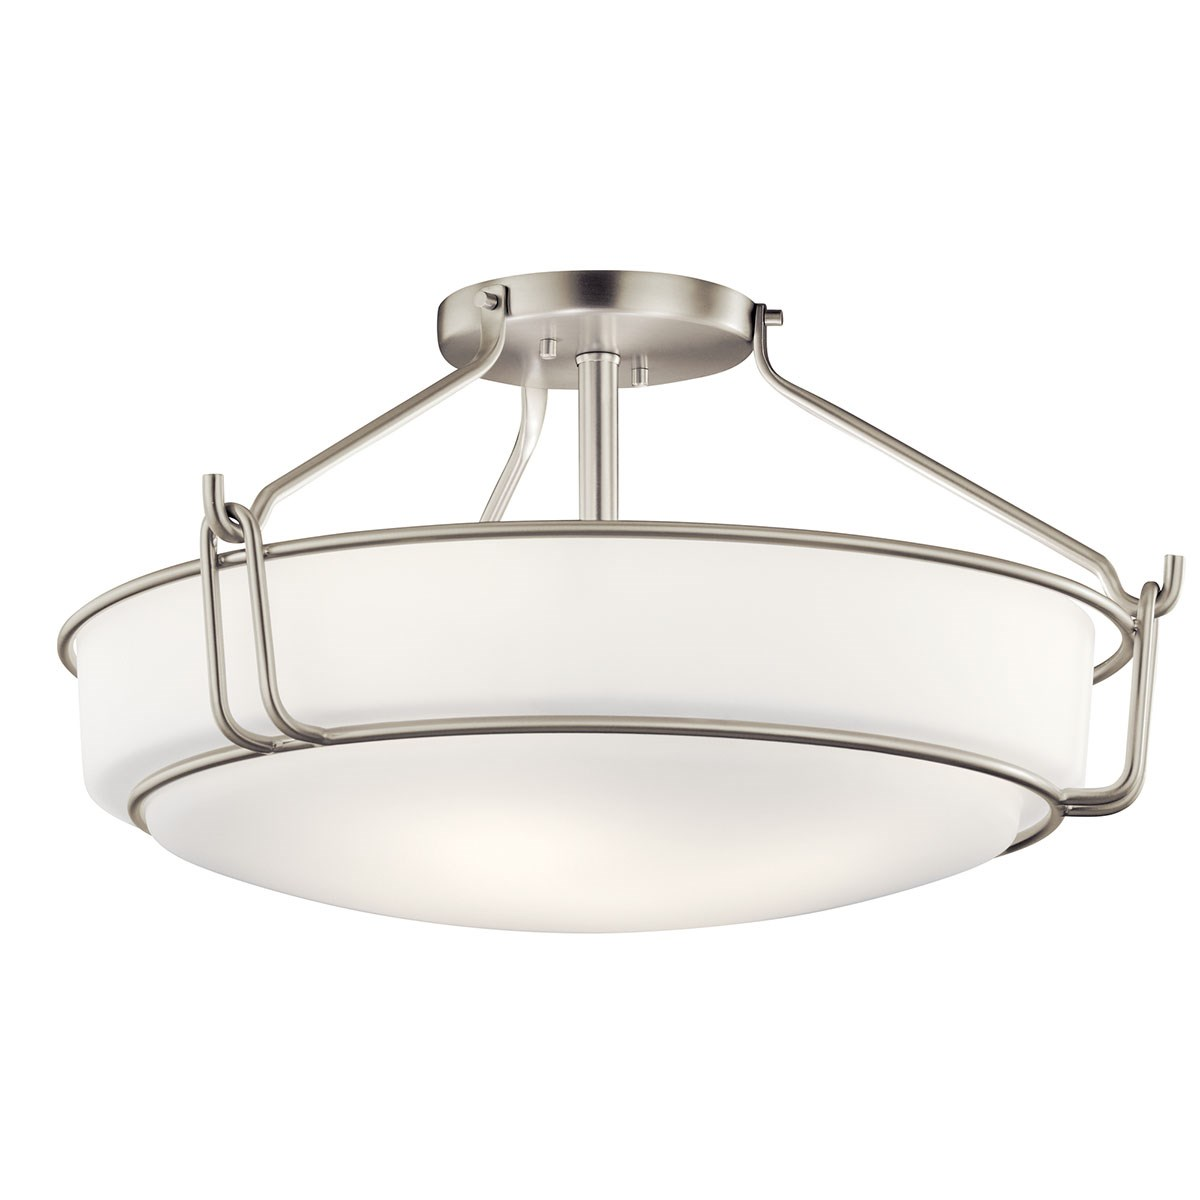 Alkire 4 Light Semi Flush Brushed Nickel